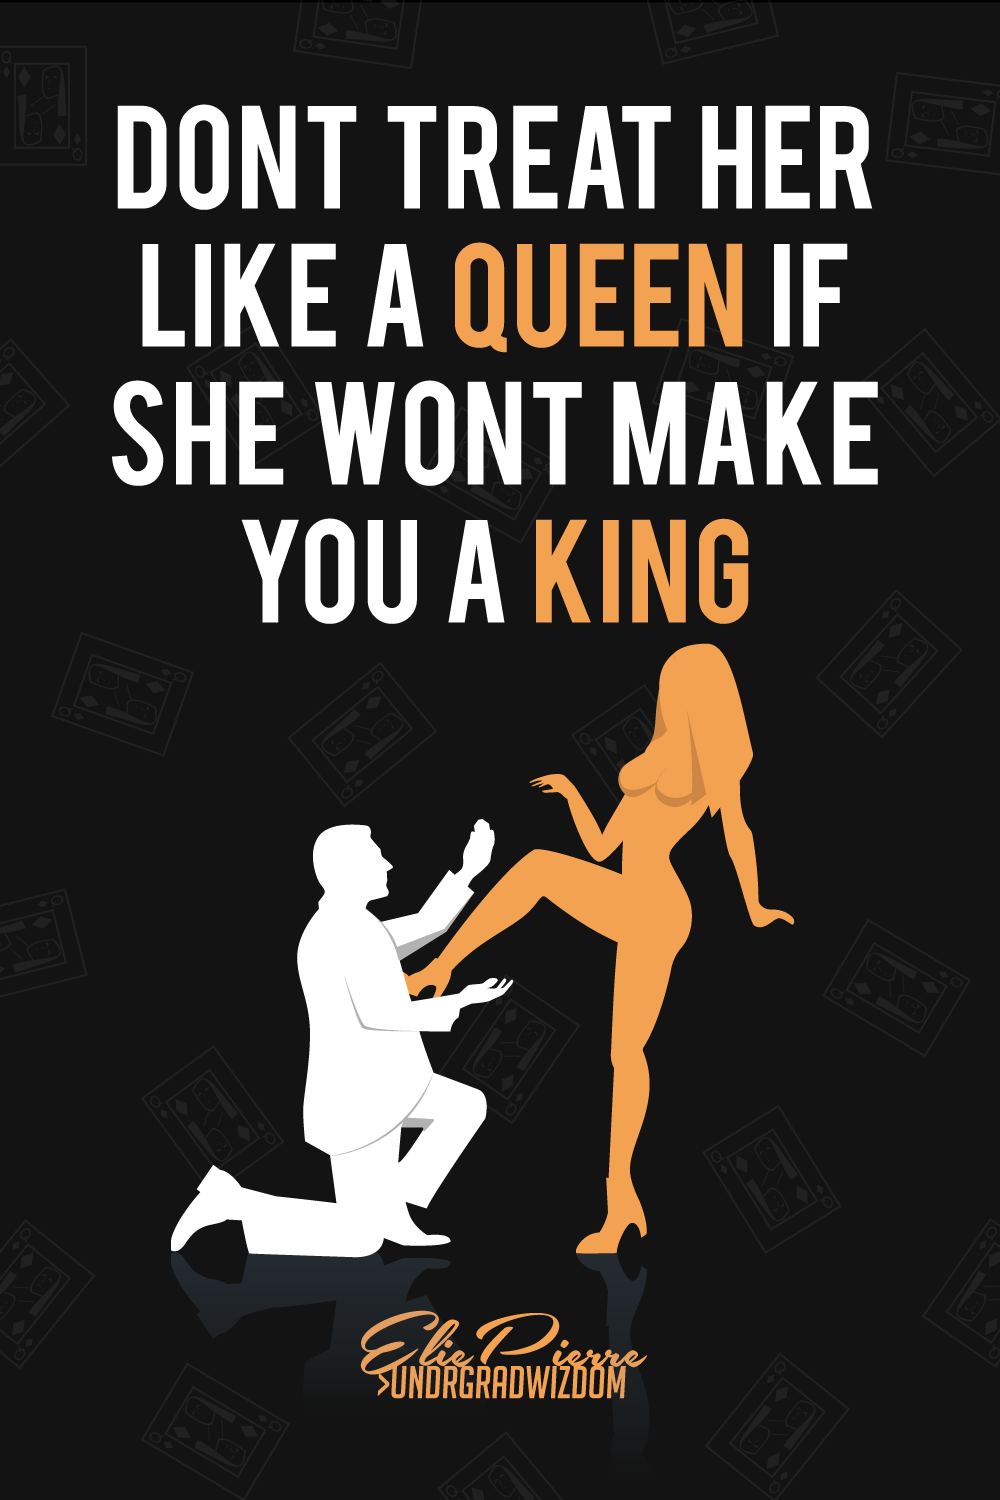 KING-FOR-A-QUEEN---Poster.png